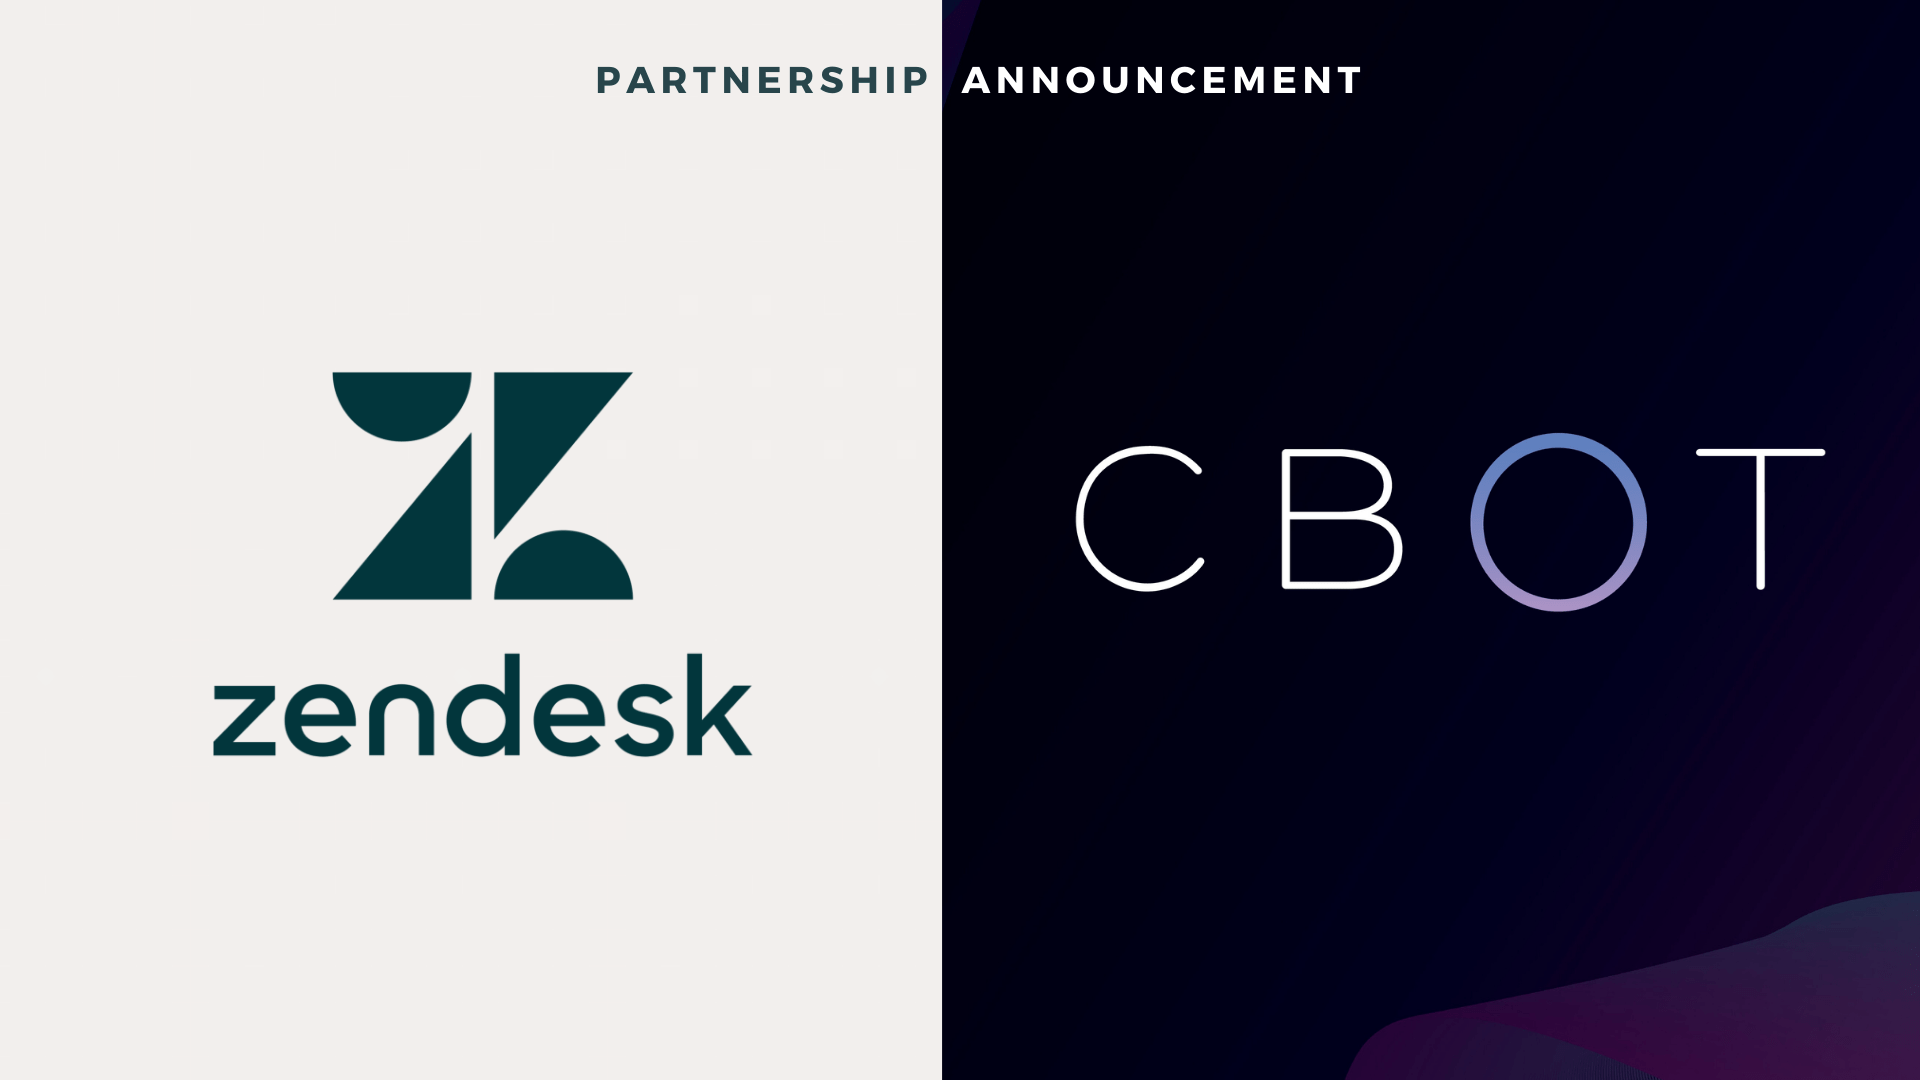 CBOT Zendesk Partnership